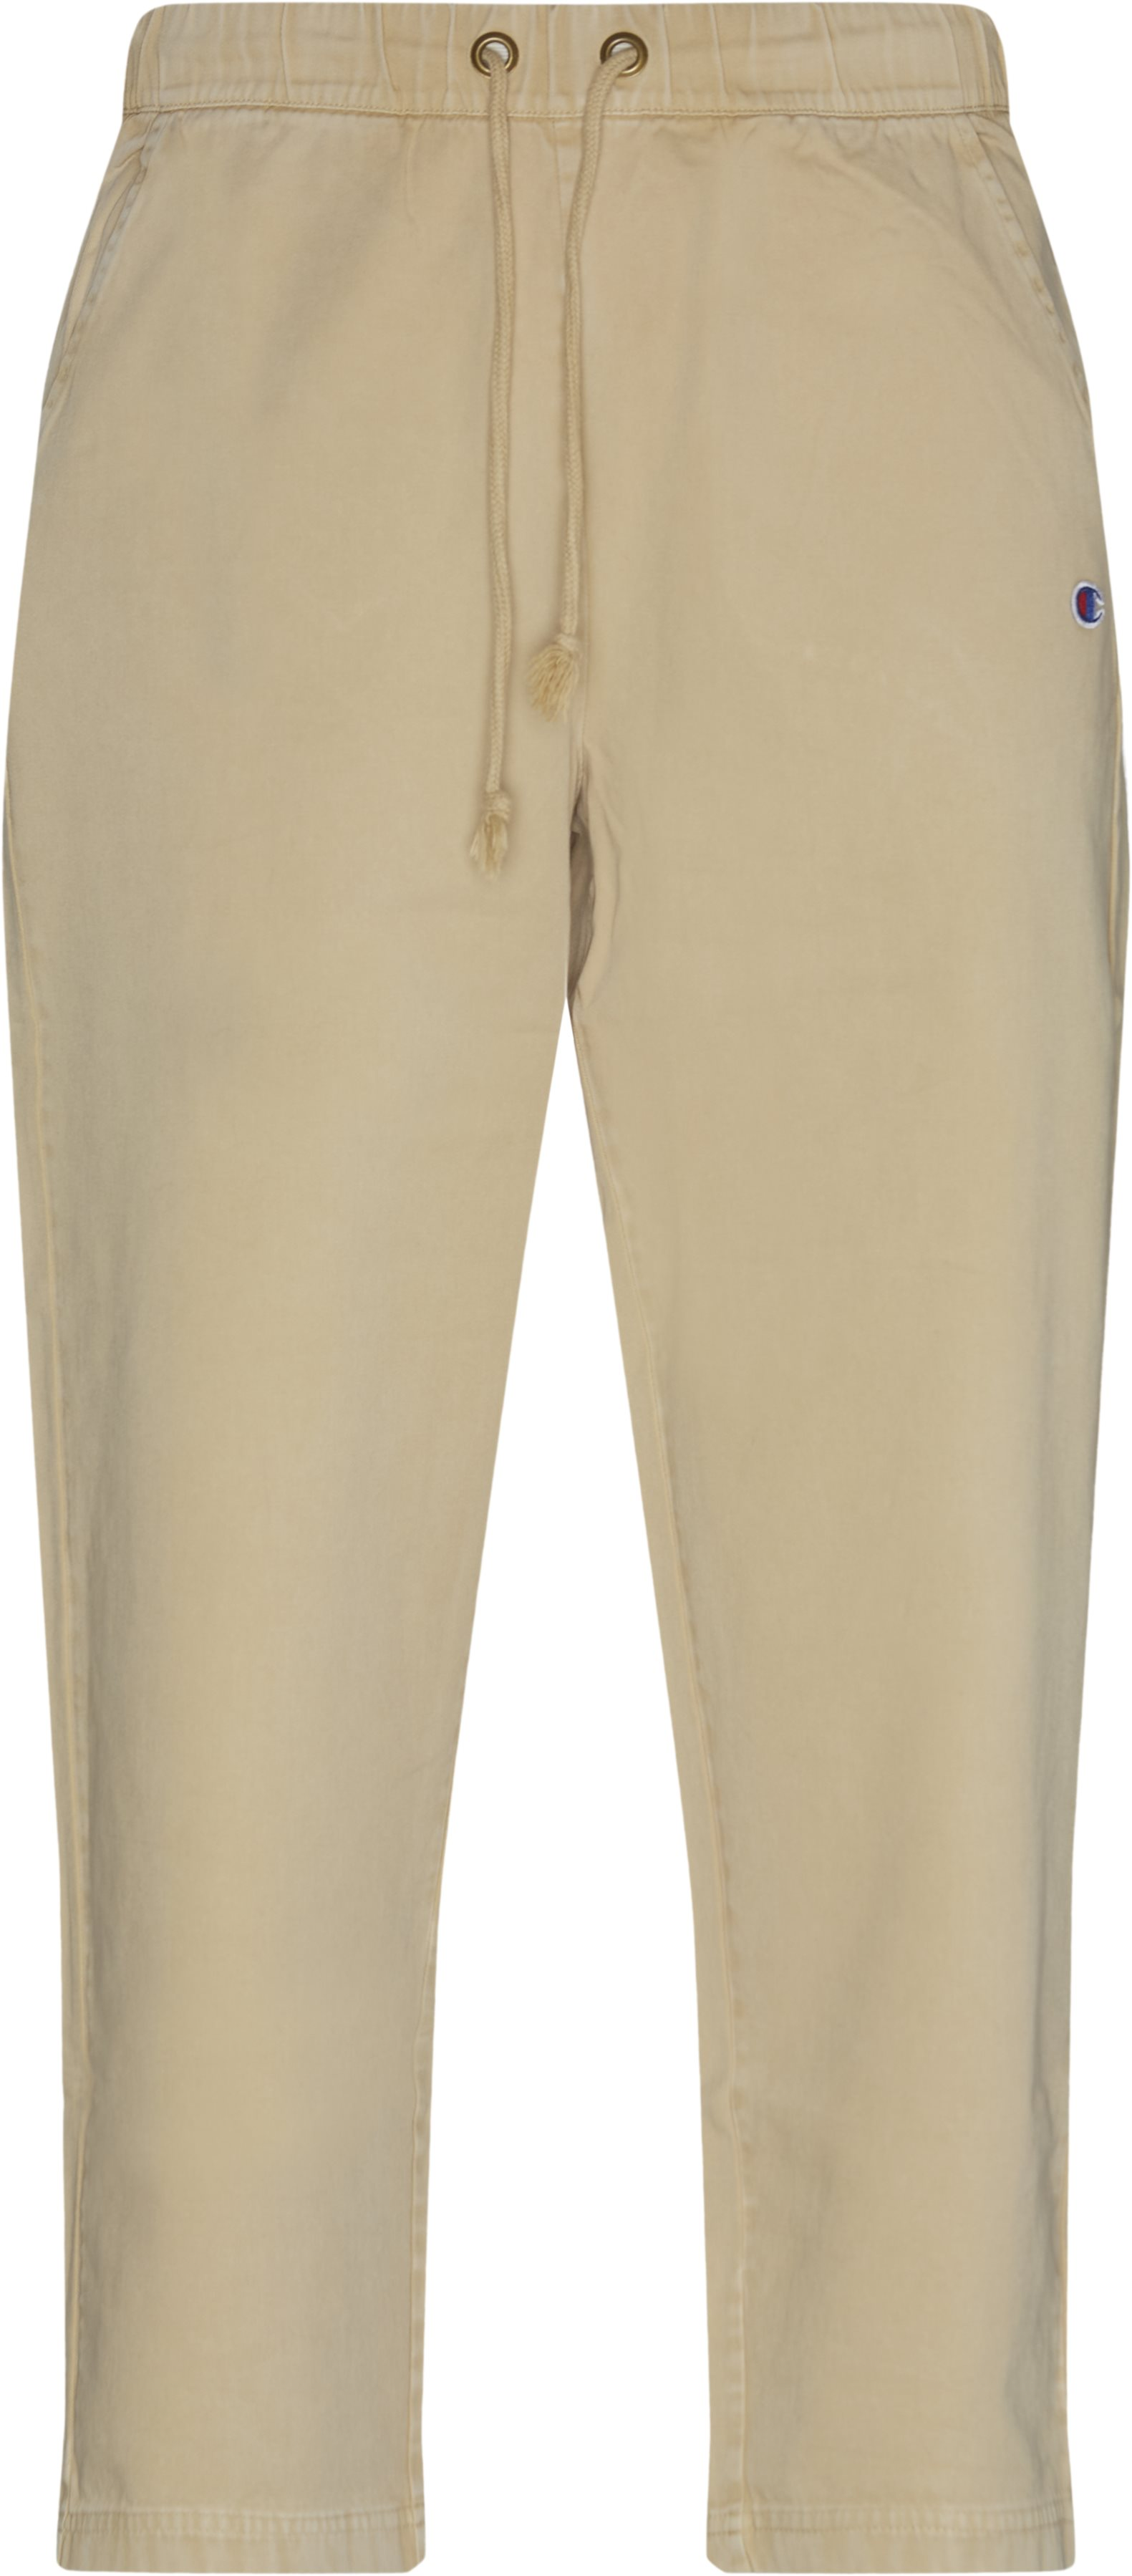 Logo Comfort Pant - Trousers - Loose fit - Sand